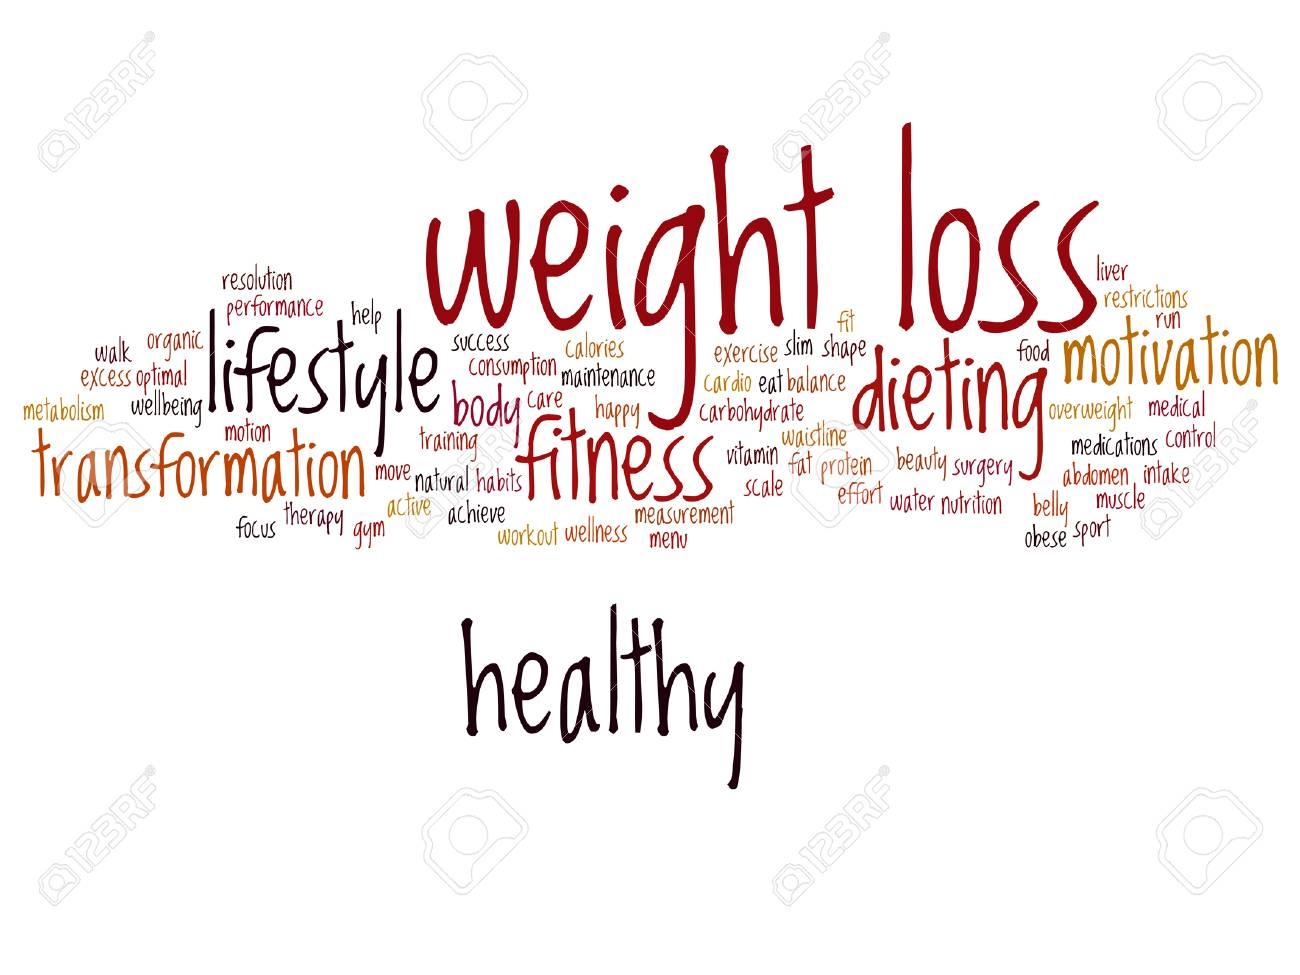 Vector weight loss healthy dieting transformation word cloud